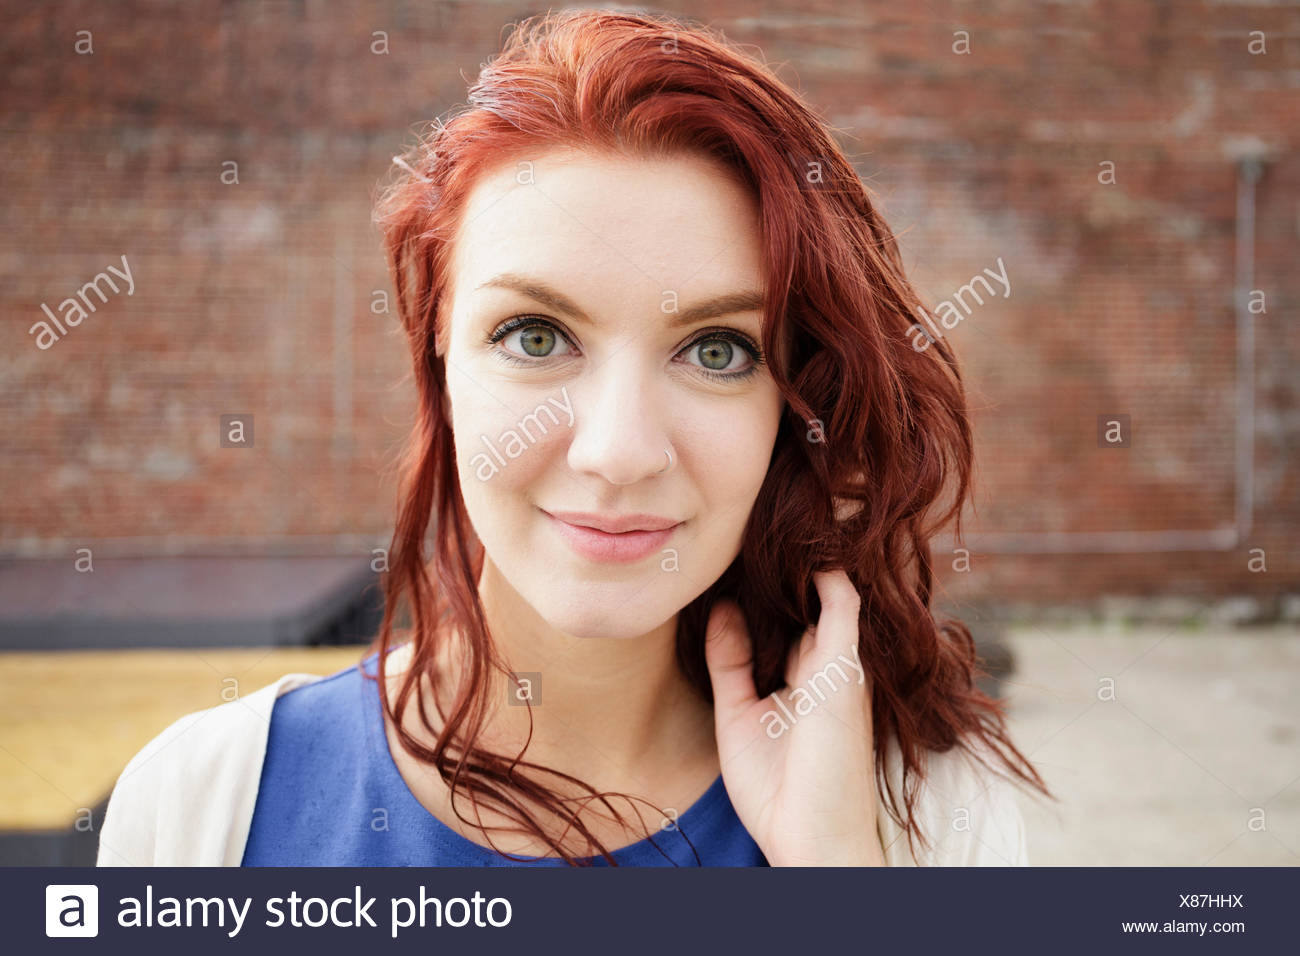 Woman With Red Hair Stock Photos   Woman With Red Hair Stock Images ... 5edd5ff9957a